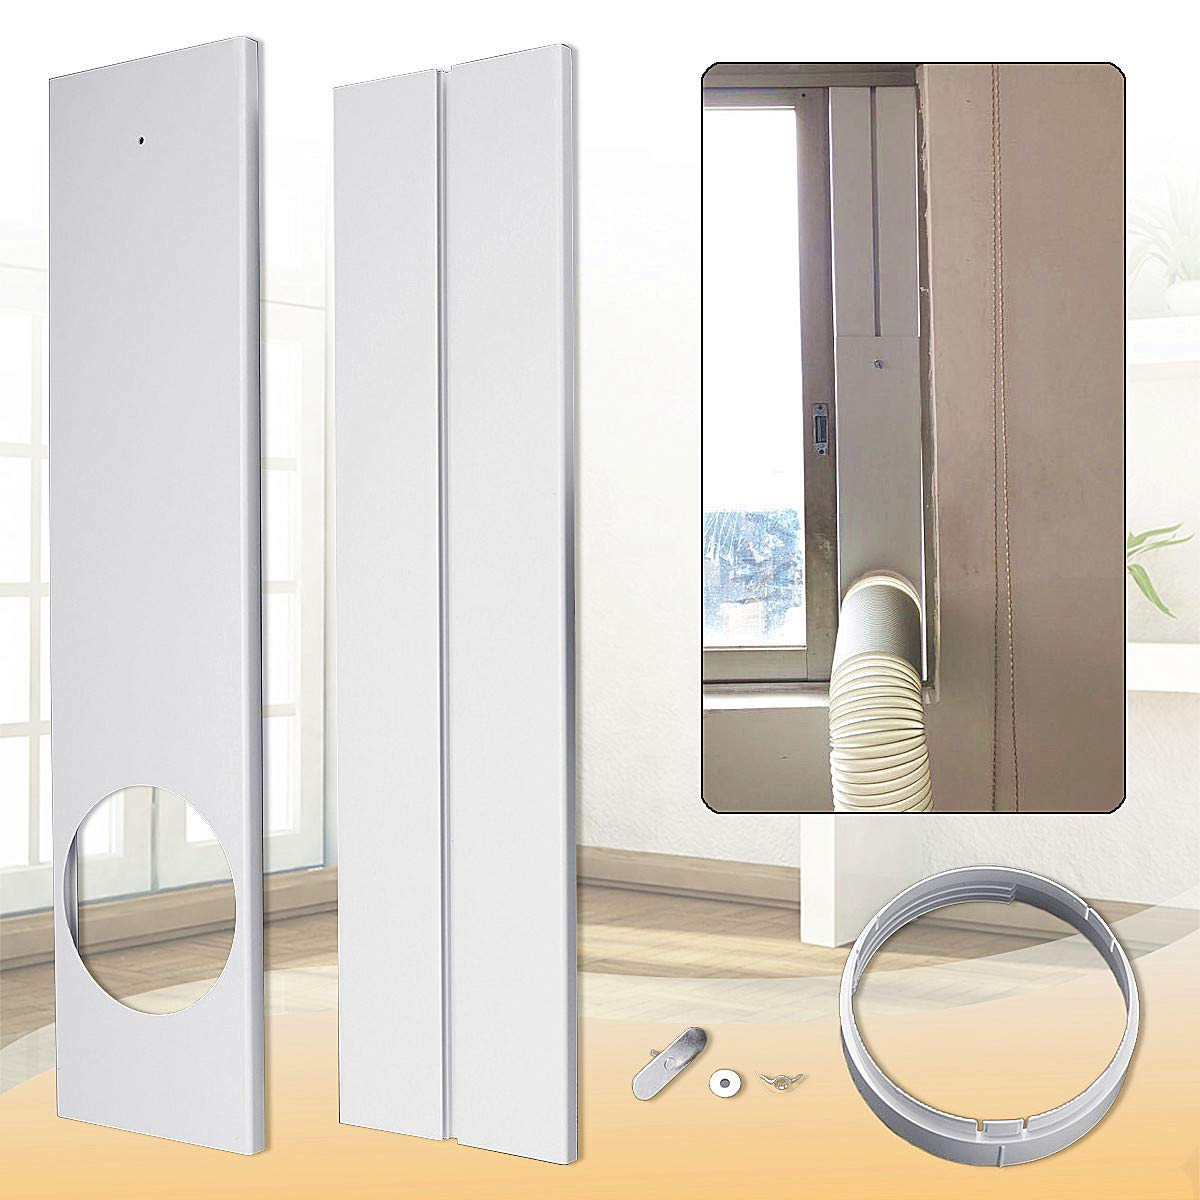 """Aozzy Portable Air Conditioner Plastic Window Kit Vent Kit for Sliding Glass Window (15CM(5.9"""") Hose, Adjustable Length between135cm-180cm Portable AC Replacement Window Slide Kit Plate Panel"""